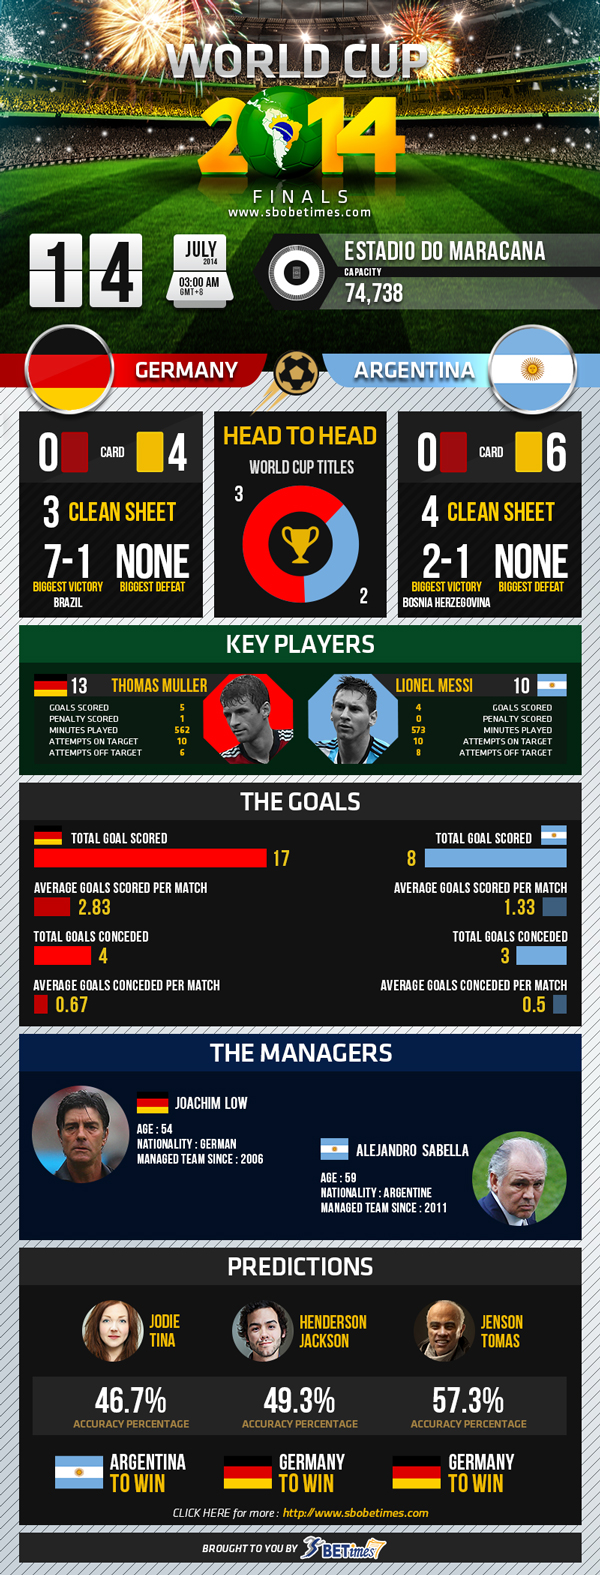 World Cup 2014 Finals: Germany vs Argentina Infographic